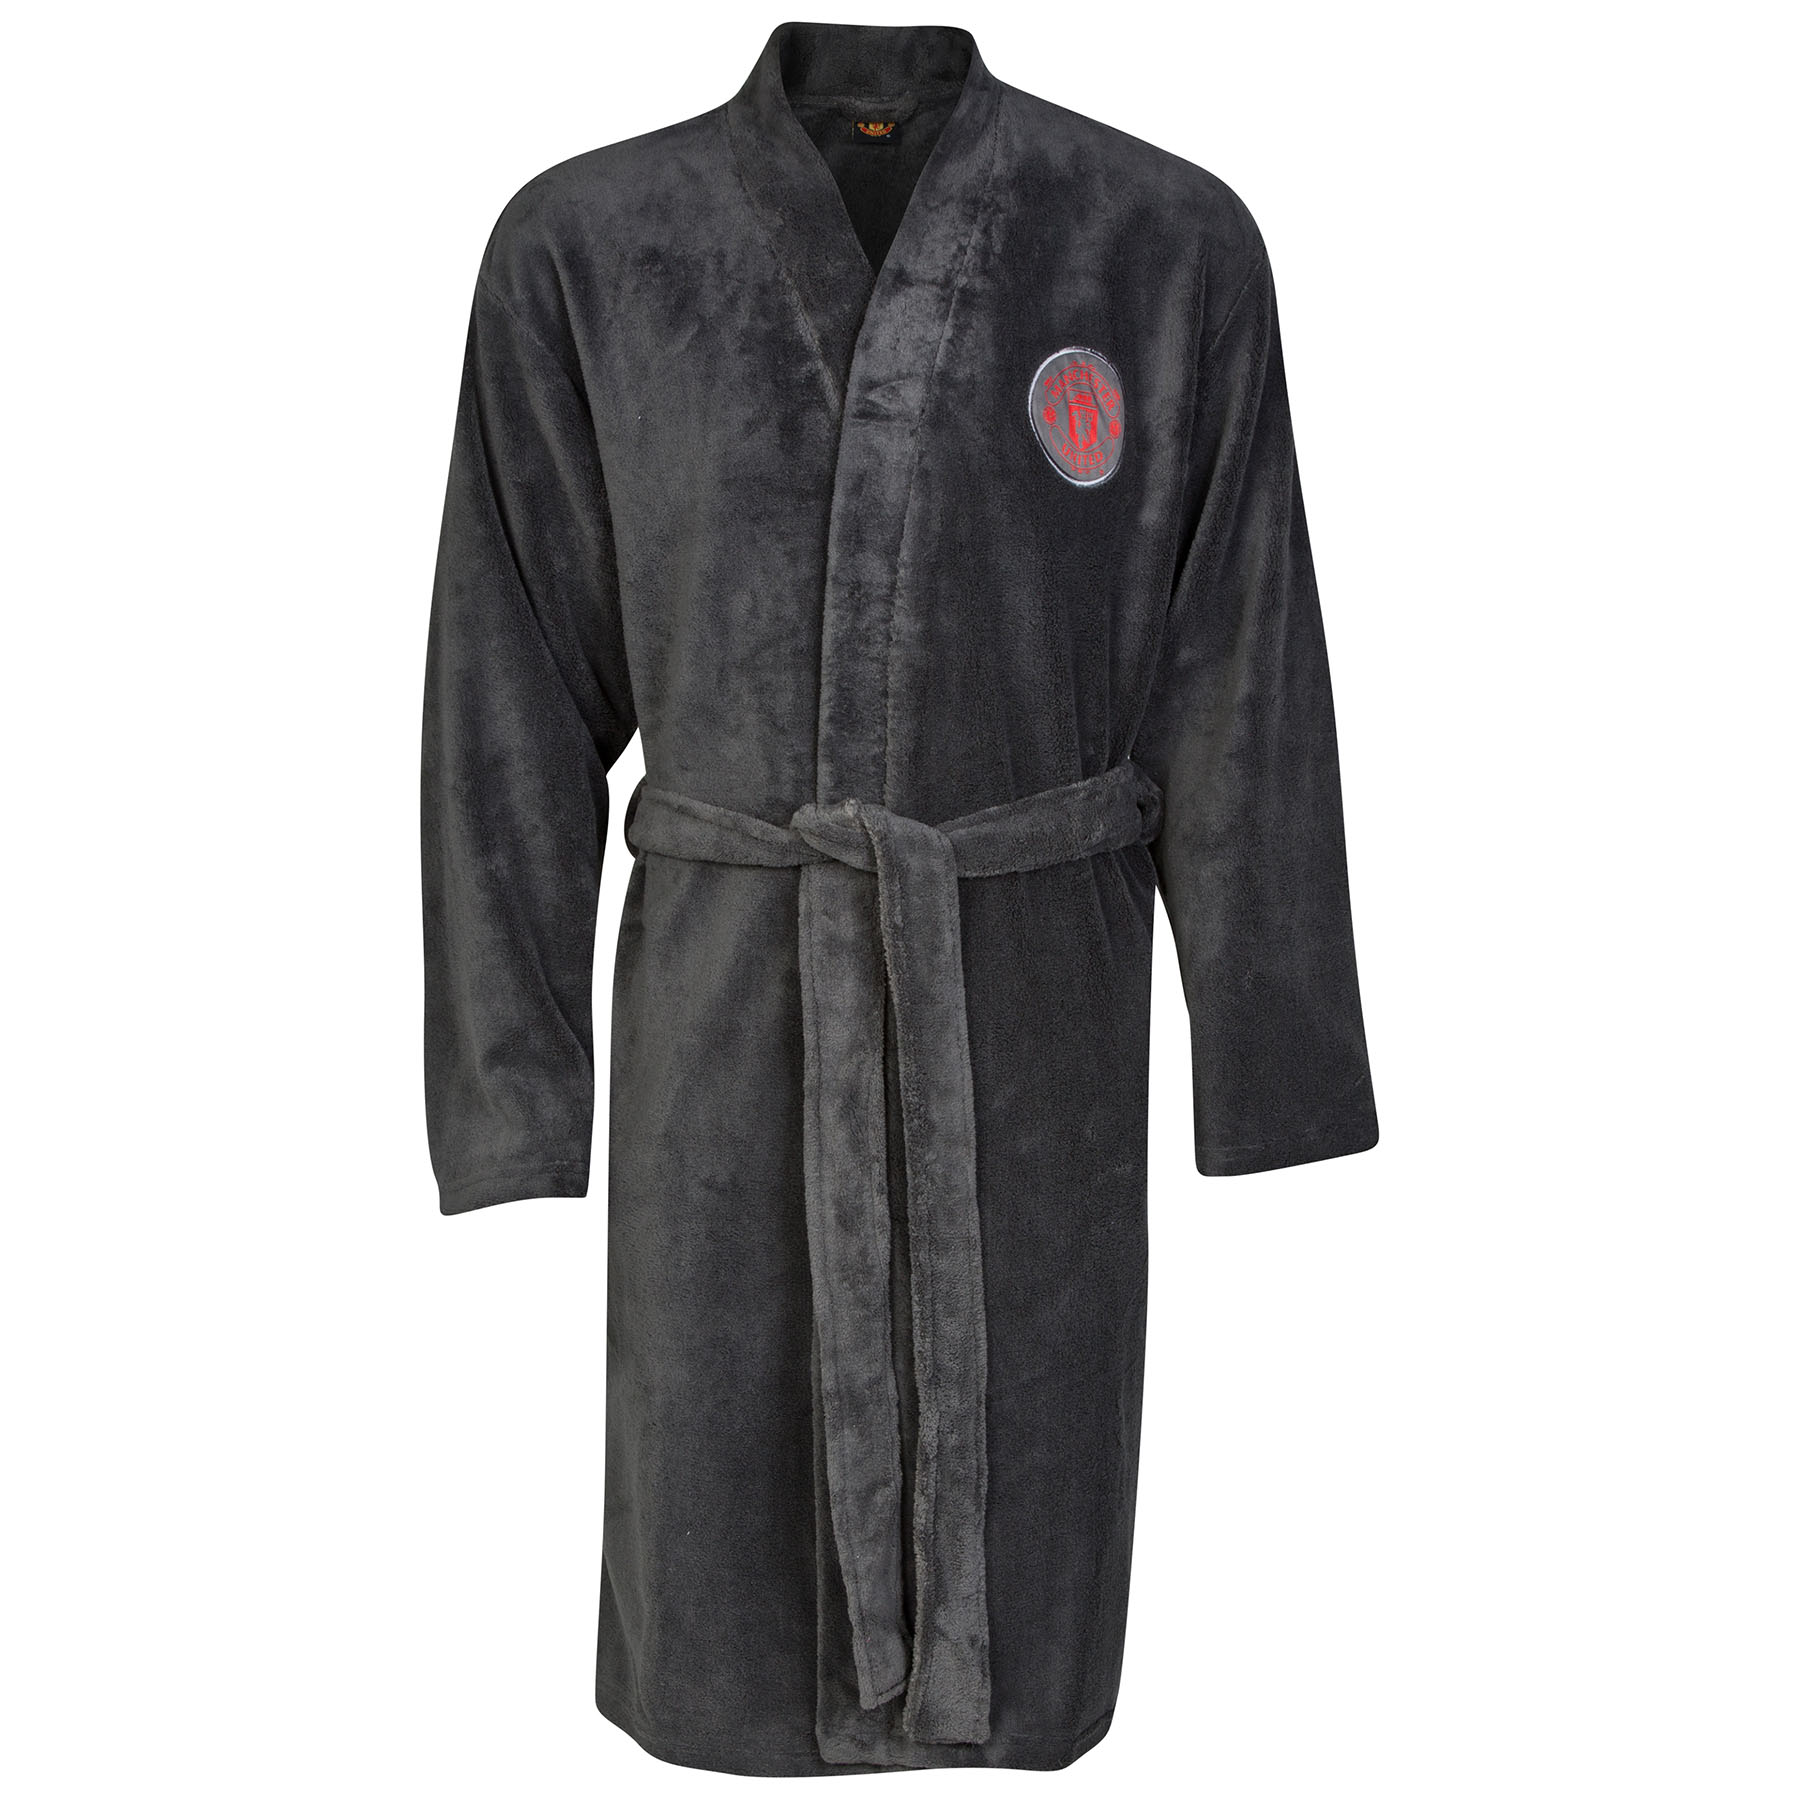 Manchester United Crest Robe - Charcoal - Mens